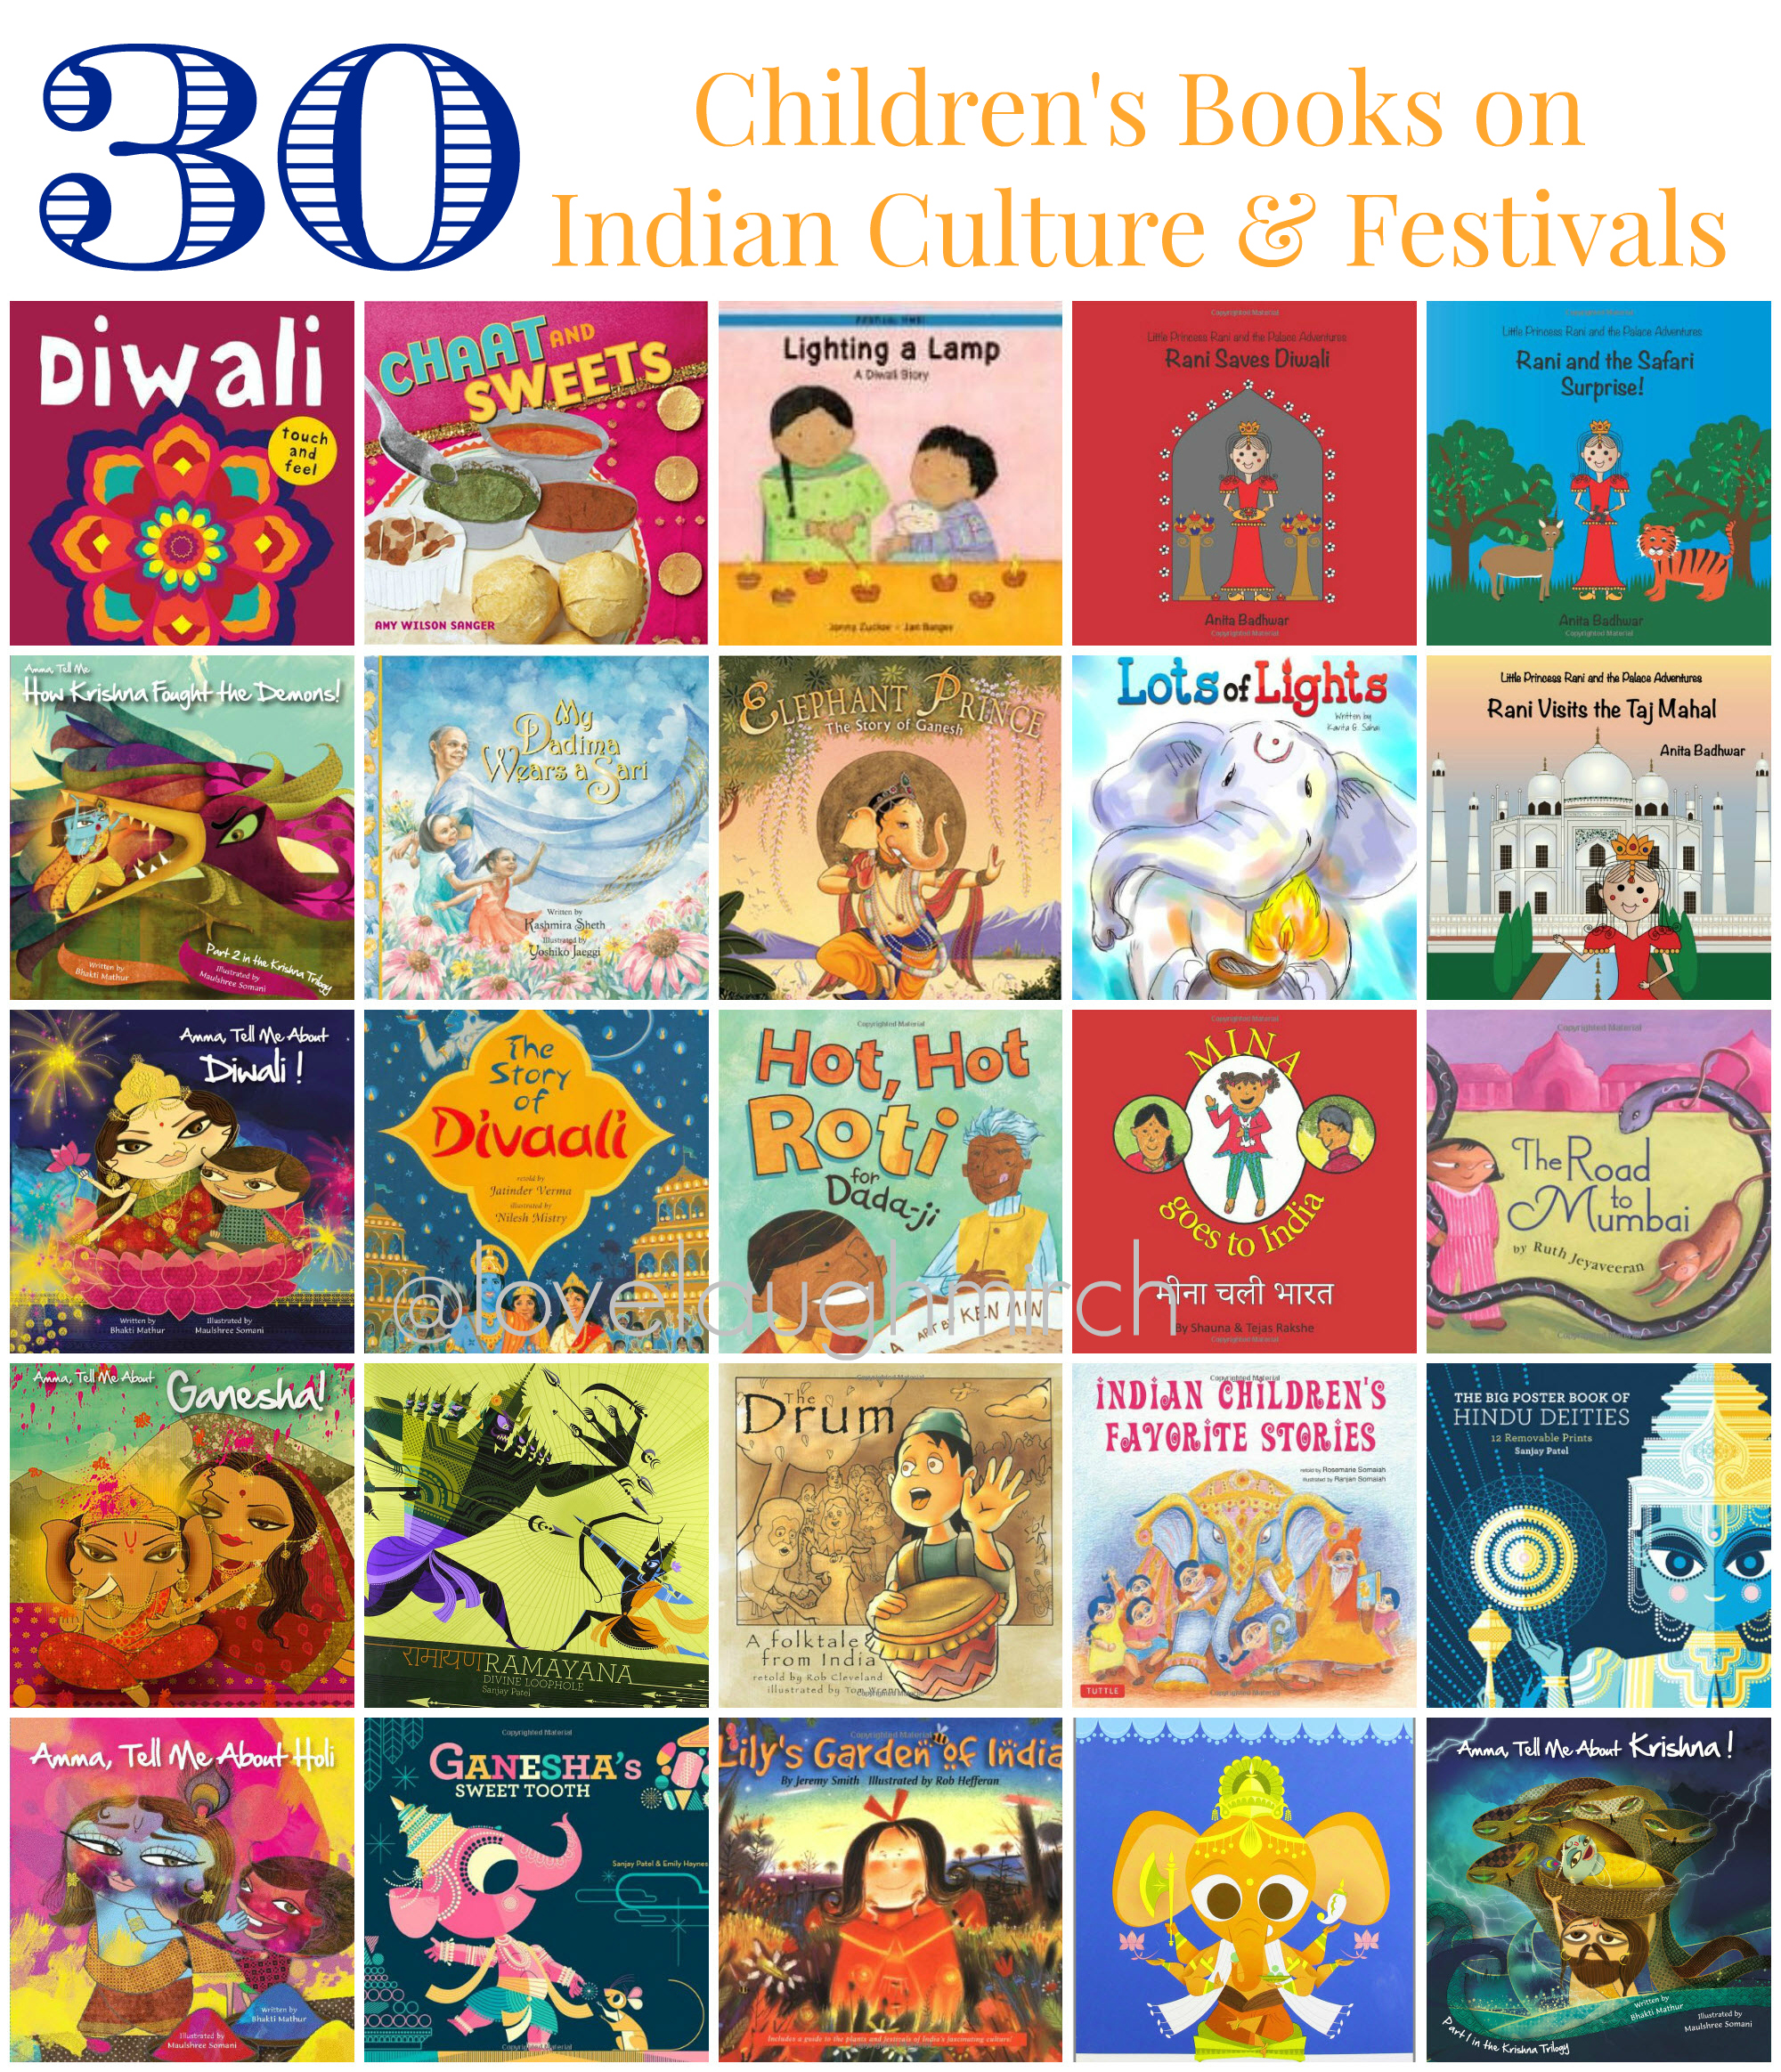 30 Childrens Books On Indian Culture Festivals